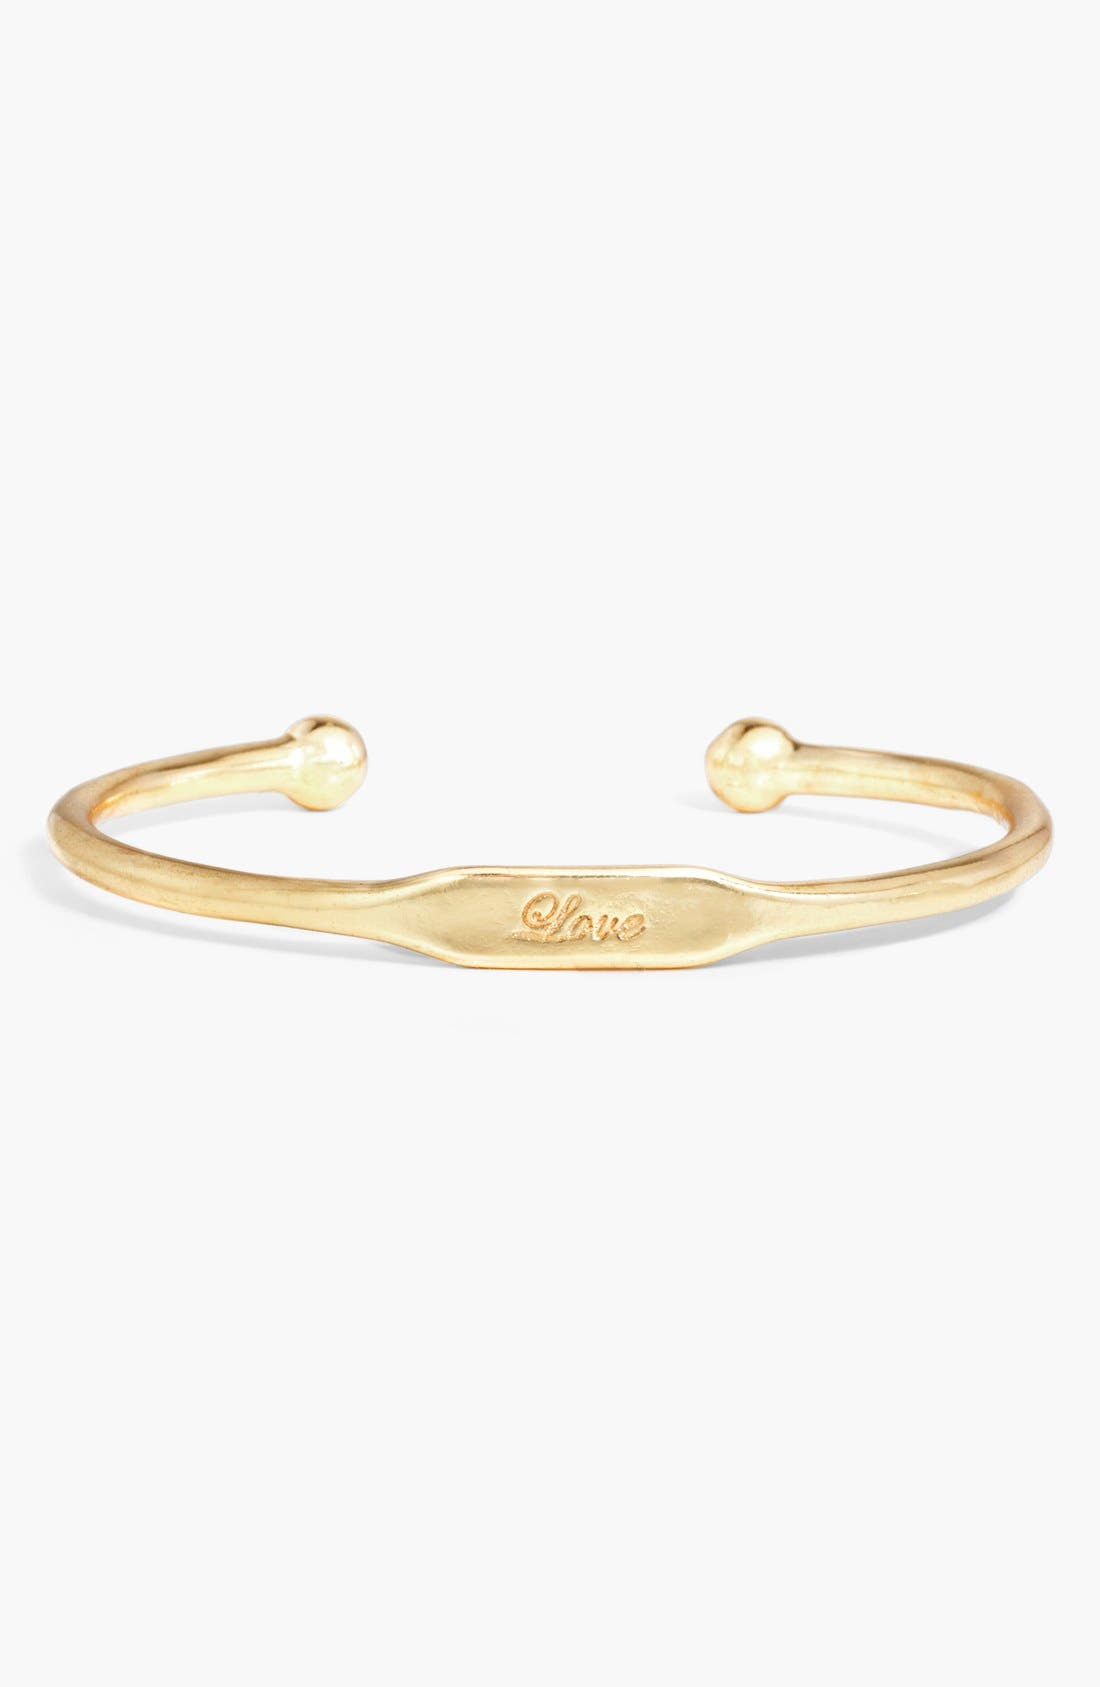 Main Image - BaubleBar 'Love' Inscription Cuff (Online Only)